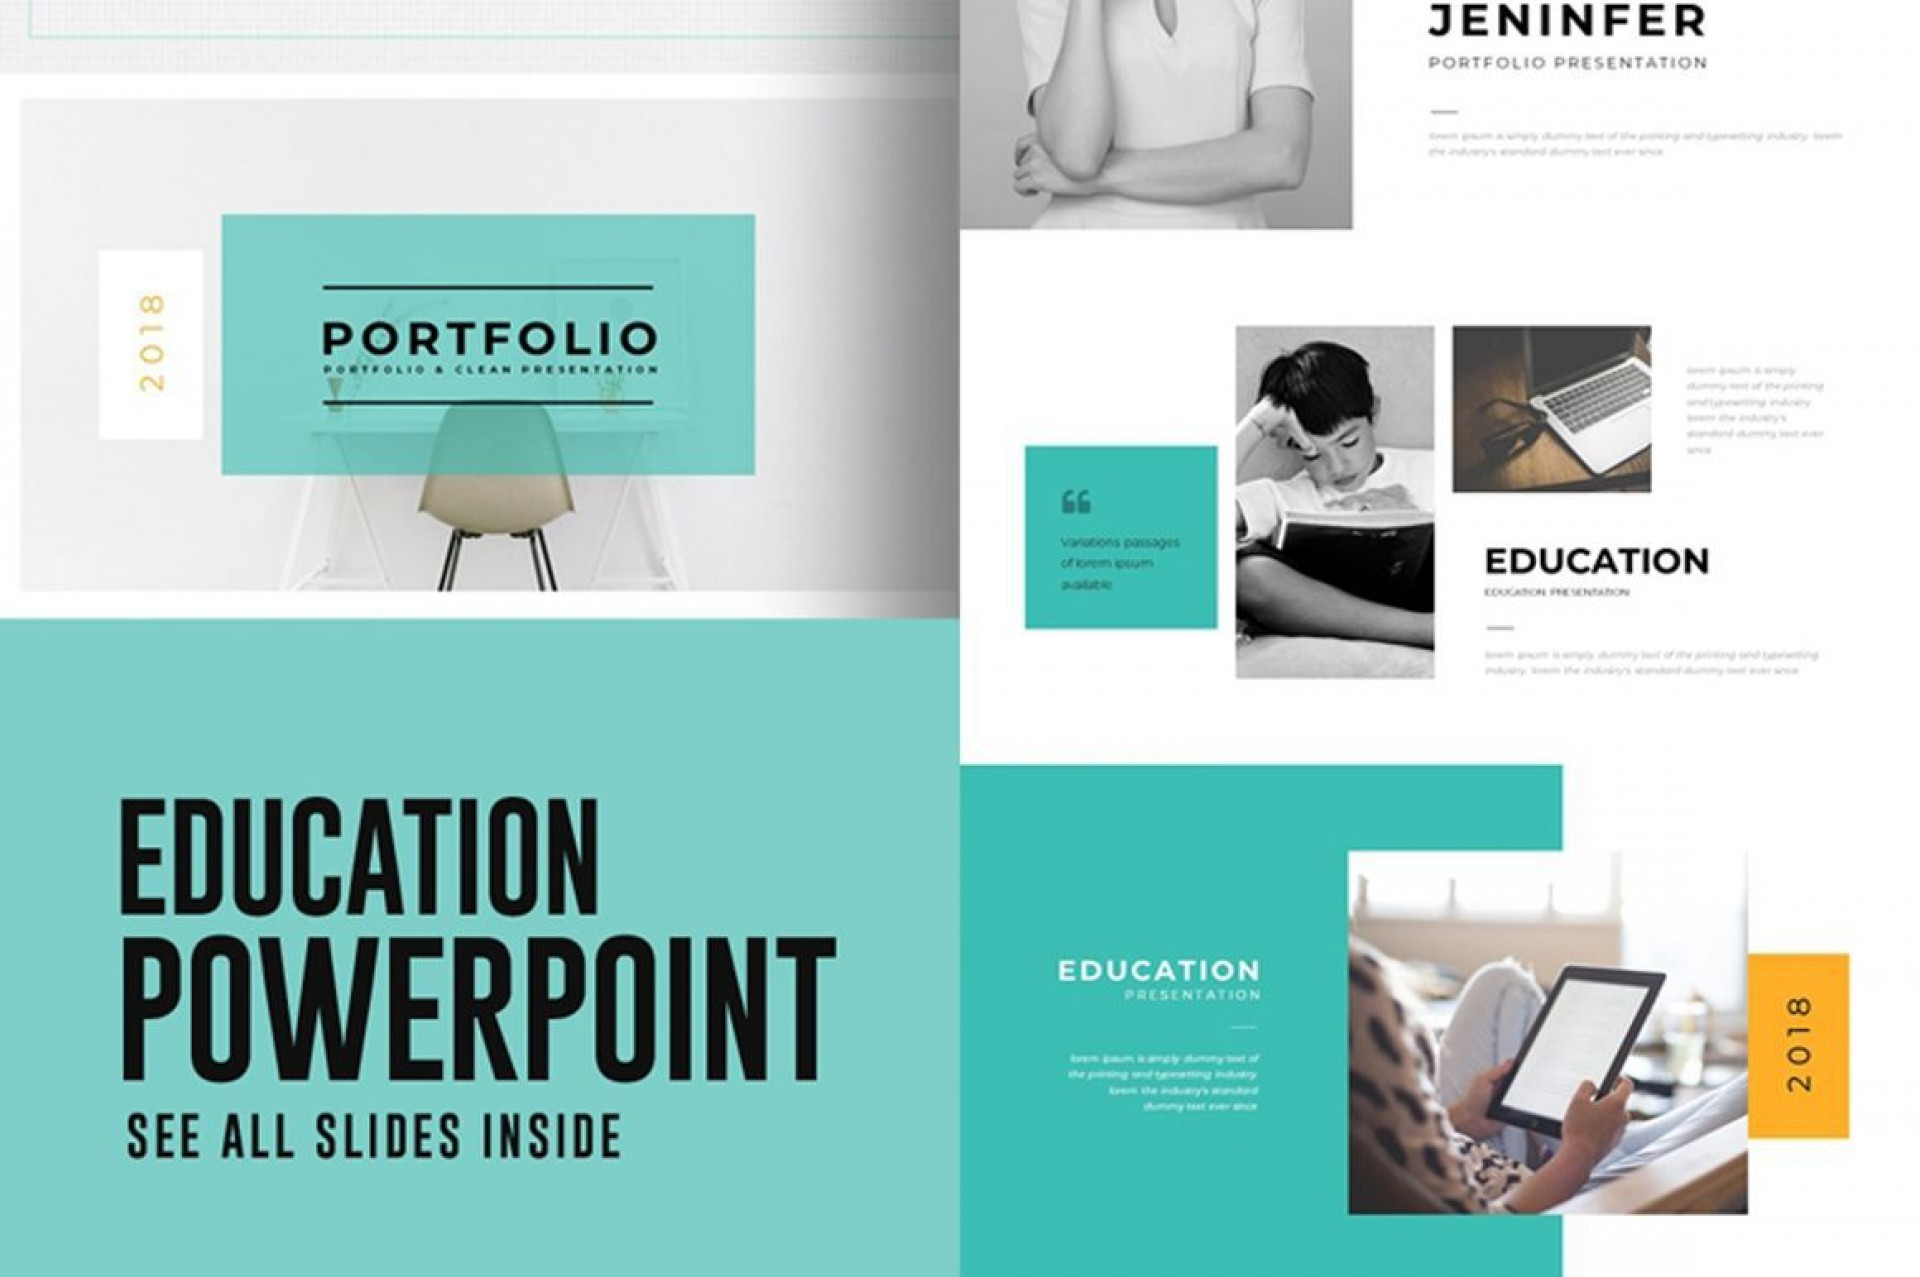 002 Unbelievable Free Education Powerpoint Template Photo  Templates Physical Download Downloadable For Teacher Design1920